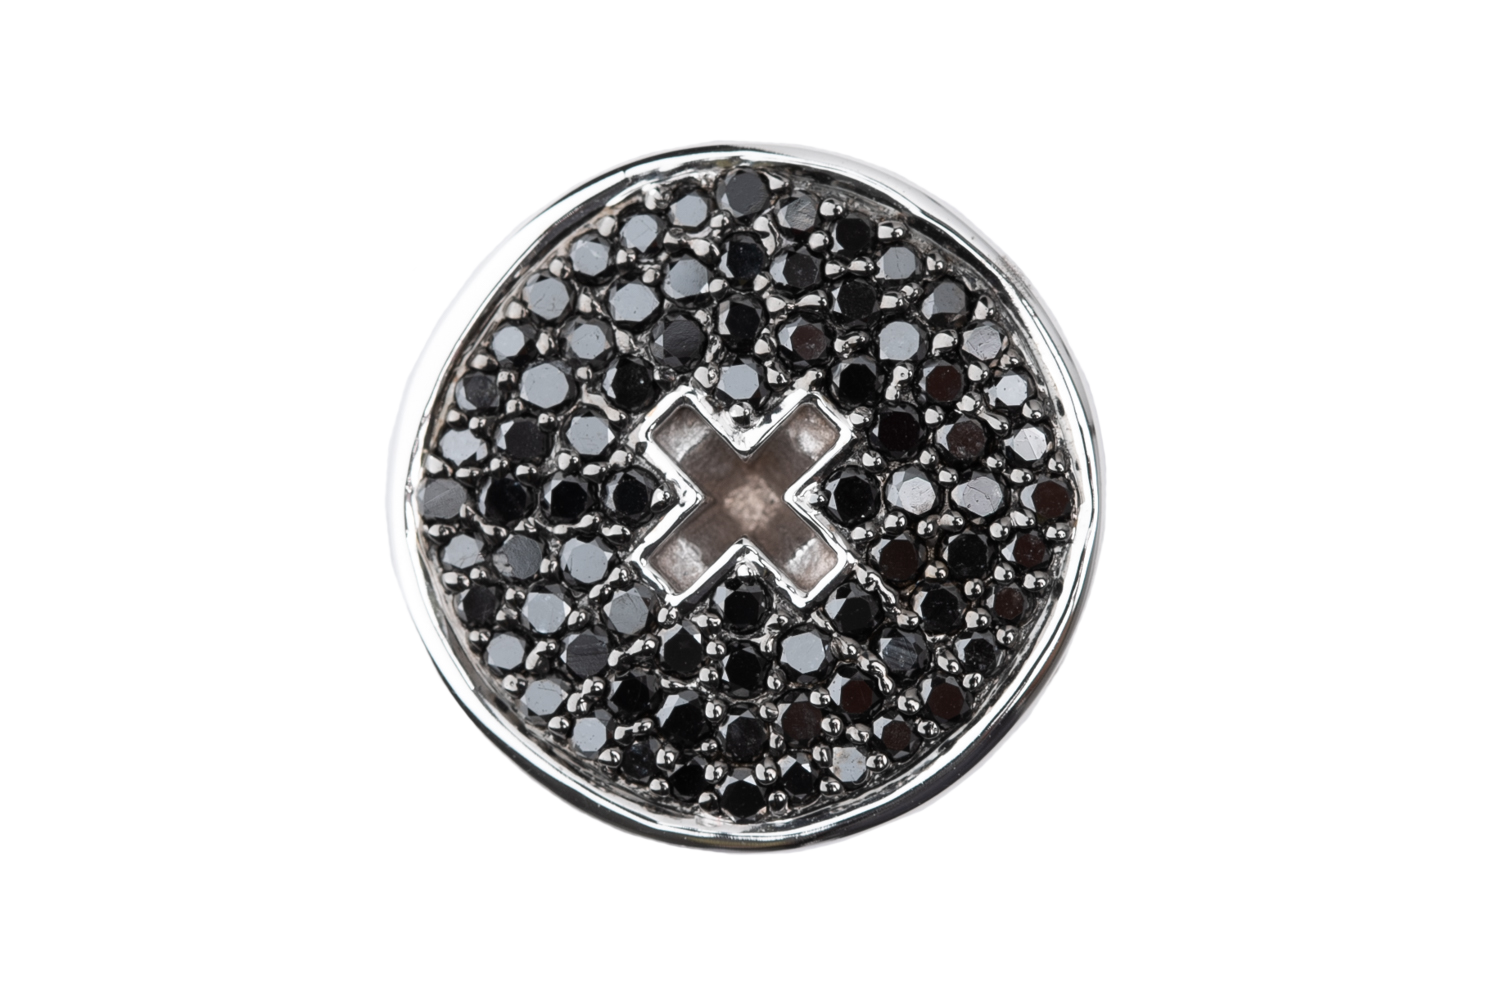 WHITE GOLD BUTTON BLACK DIAMONDS